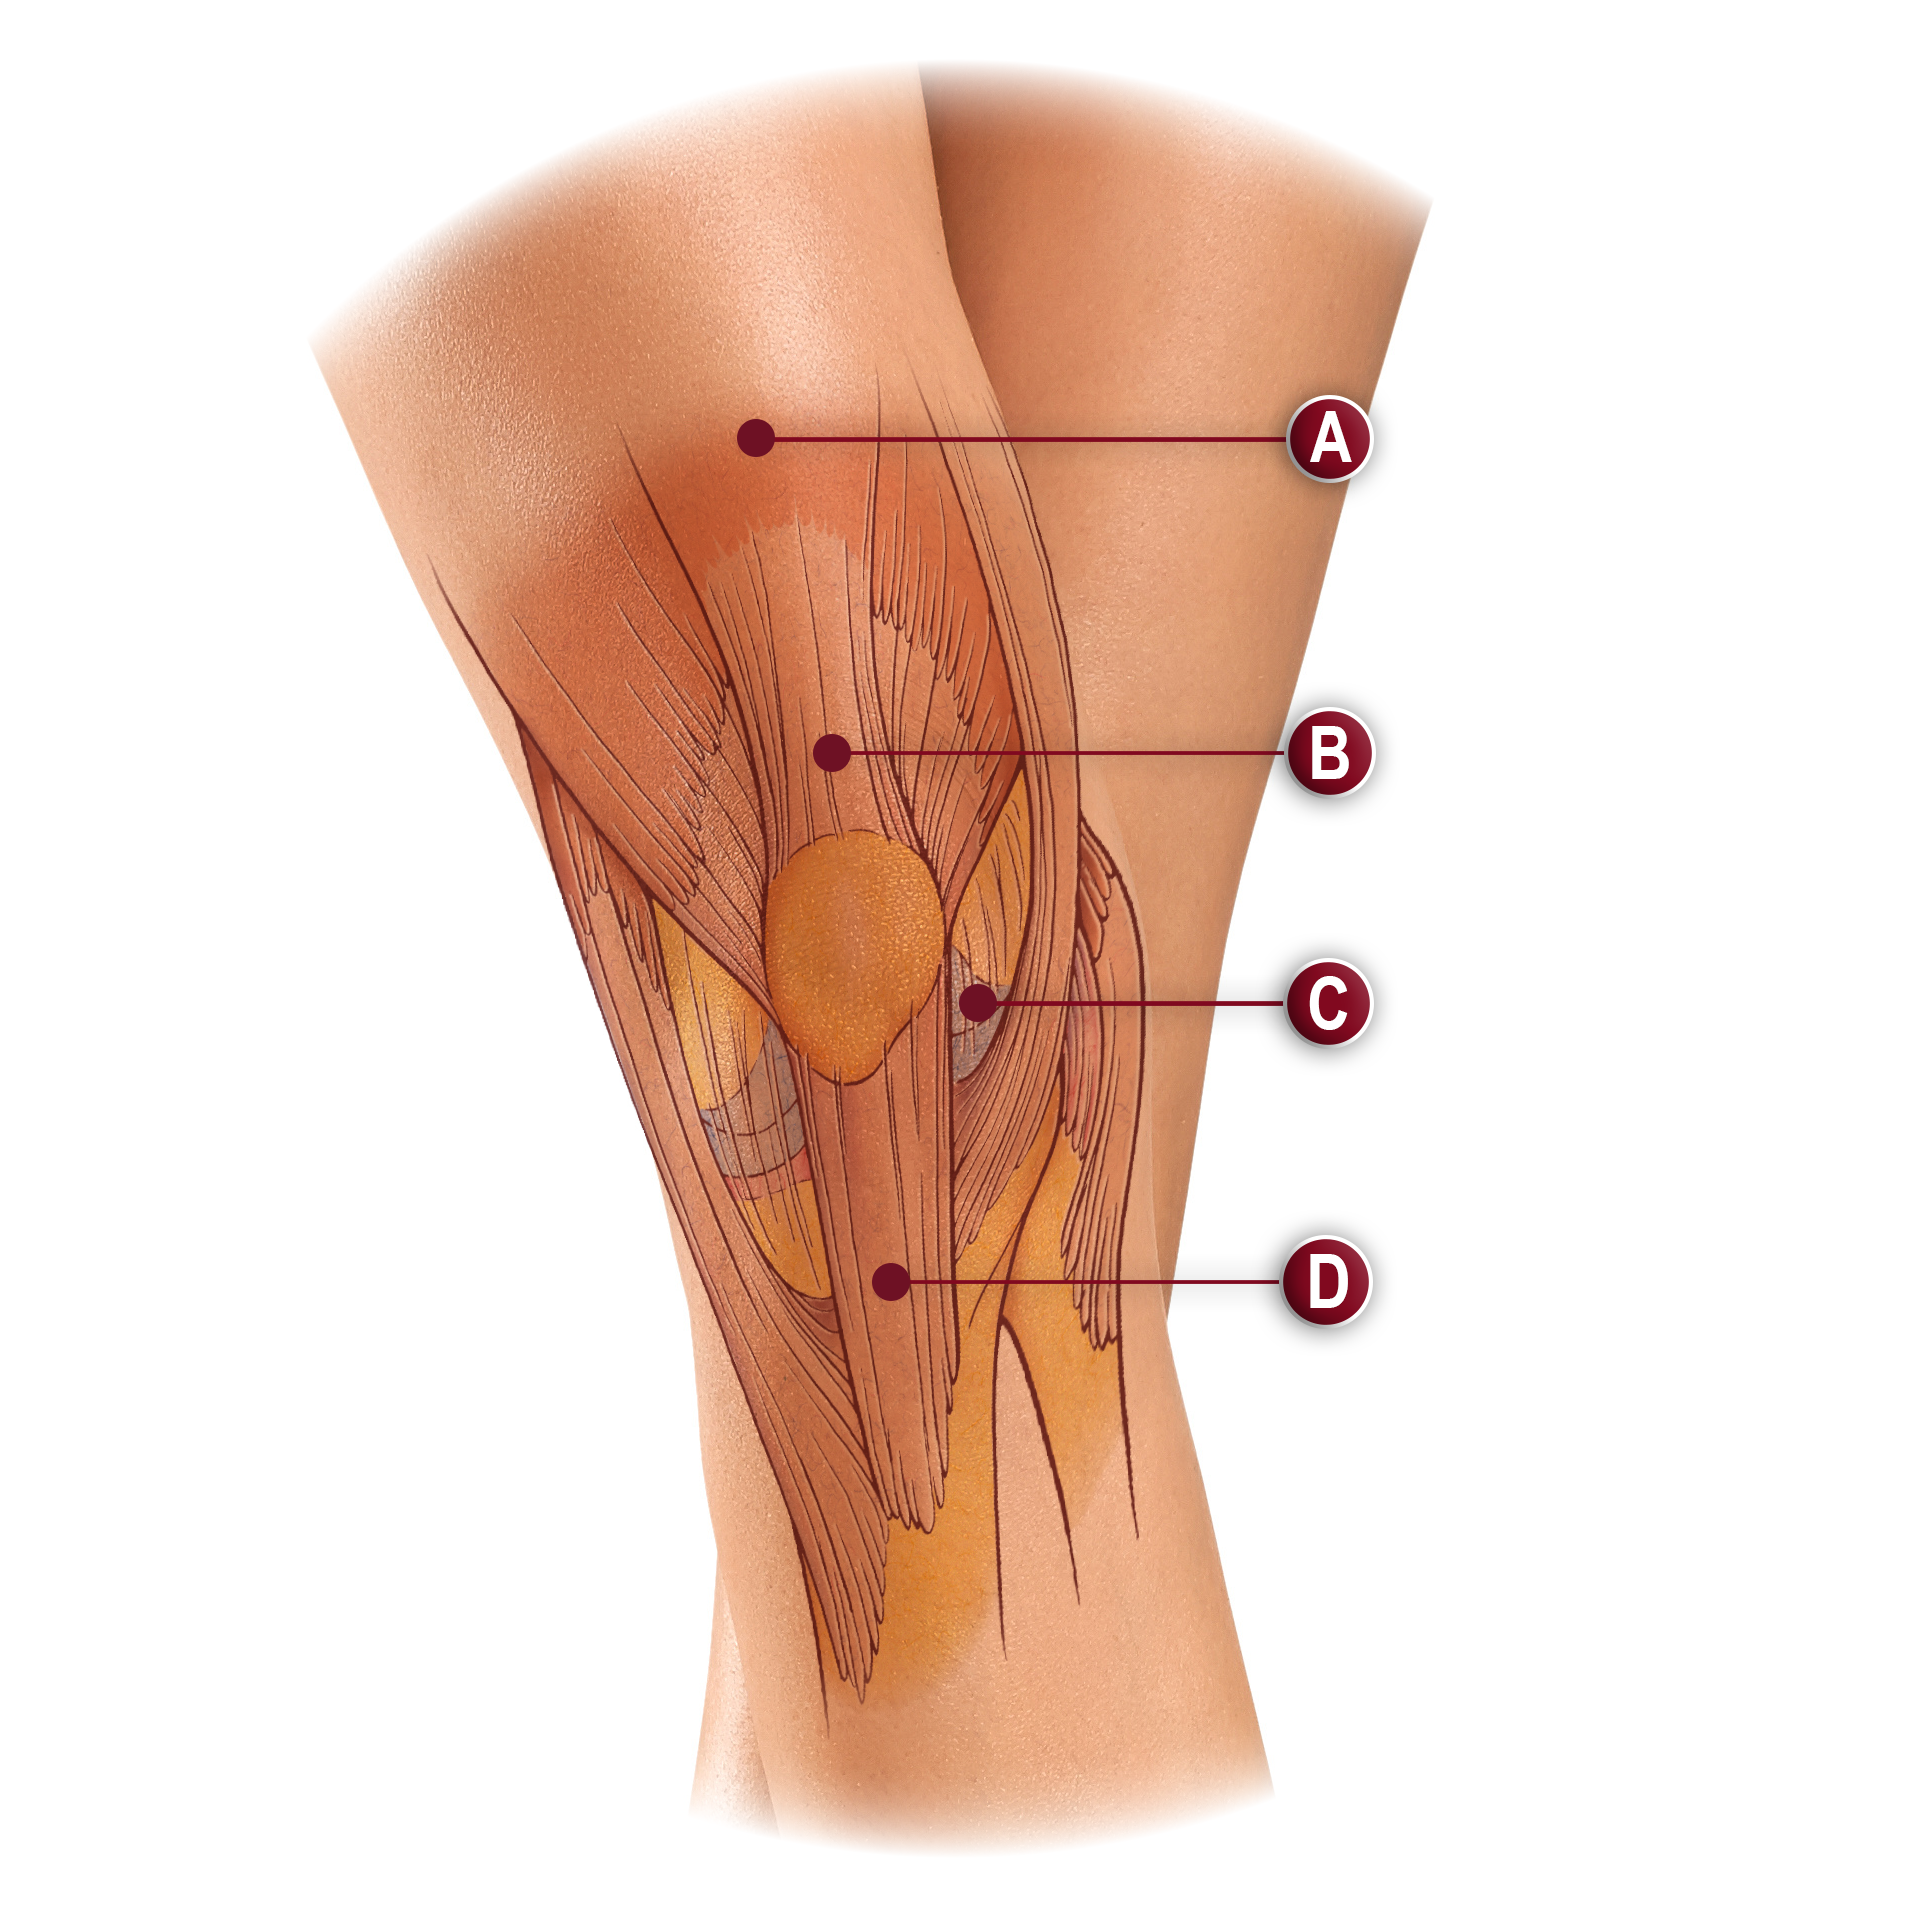 SOFT TISSUES OF THE KNEE ILLUSTRATION